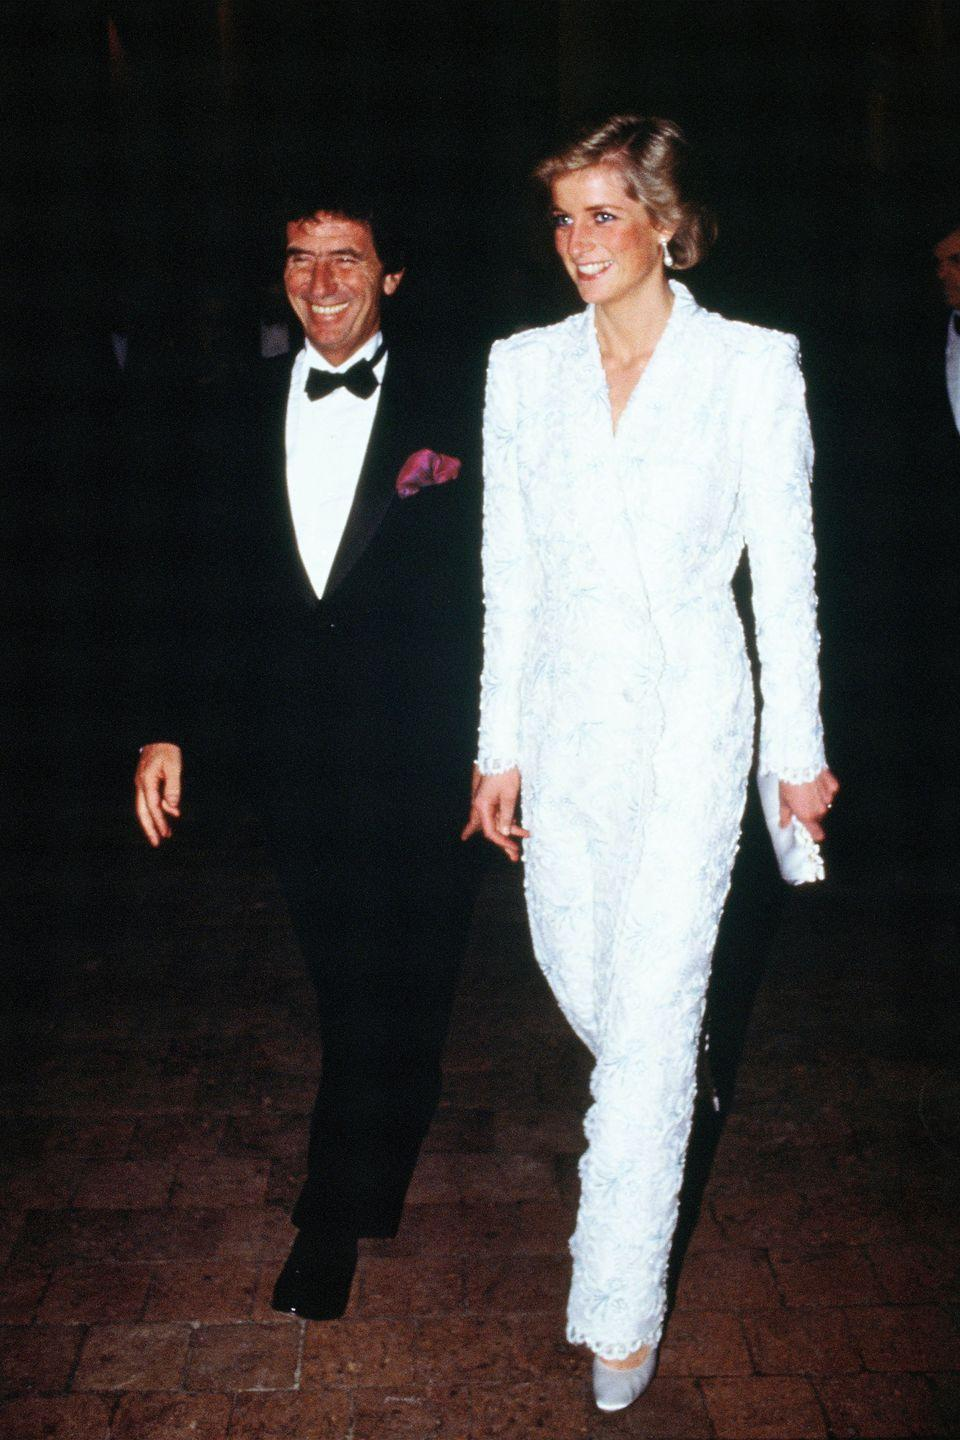 <p>In a white suit by Catherine Walker at a dinner at Chateau de Chambord during an official visit to France. </p>